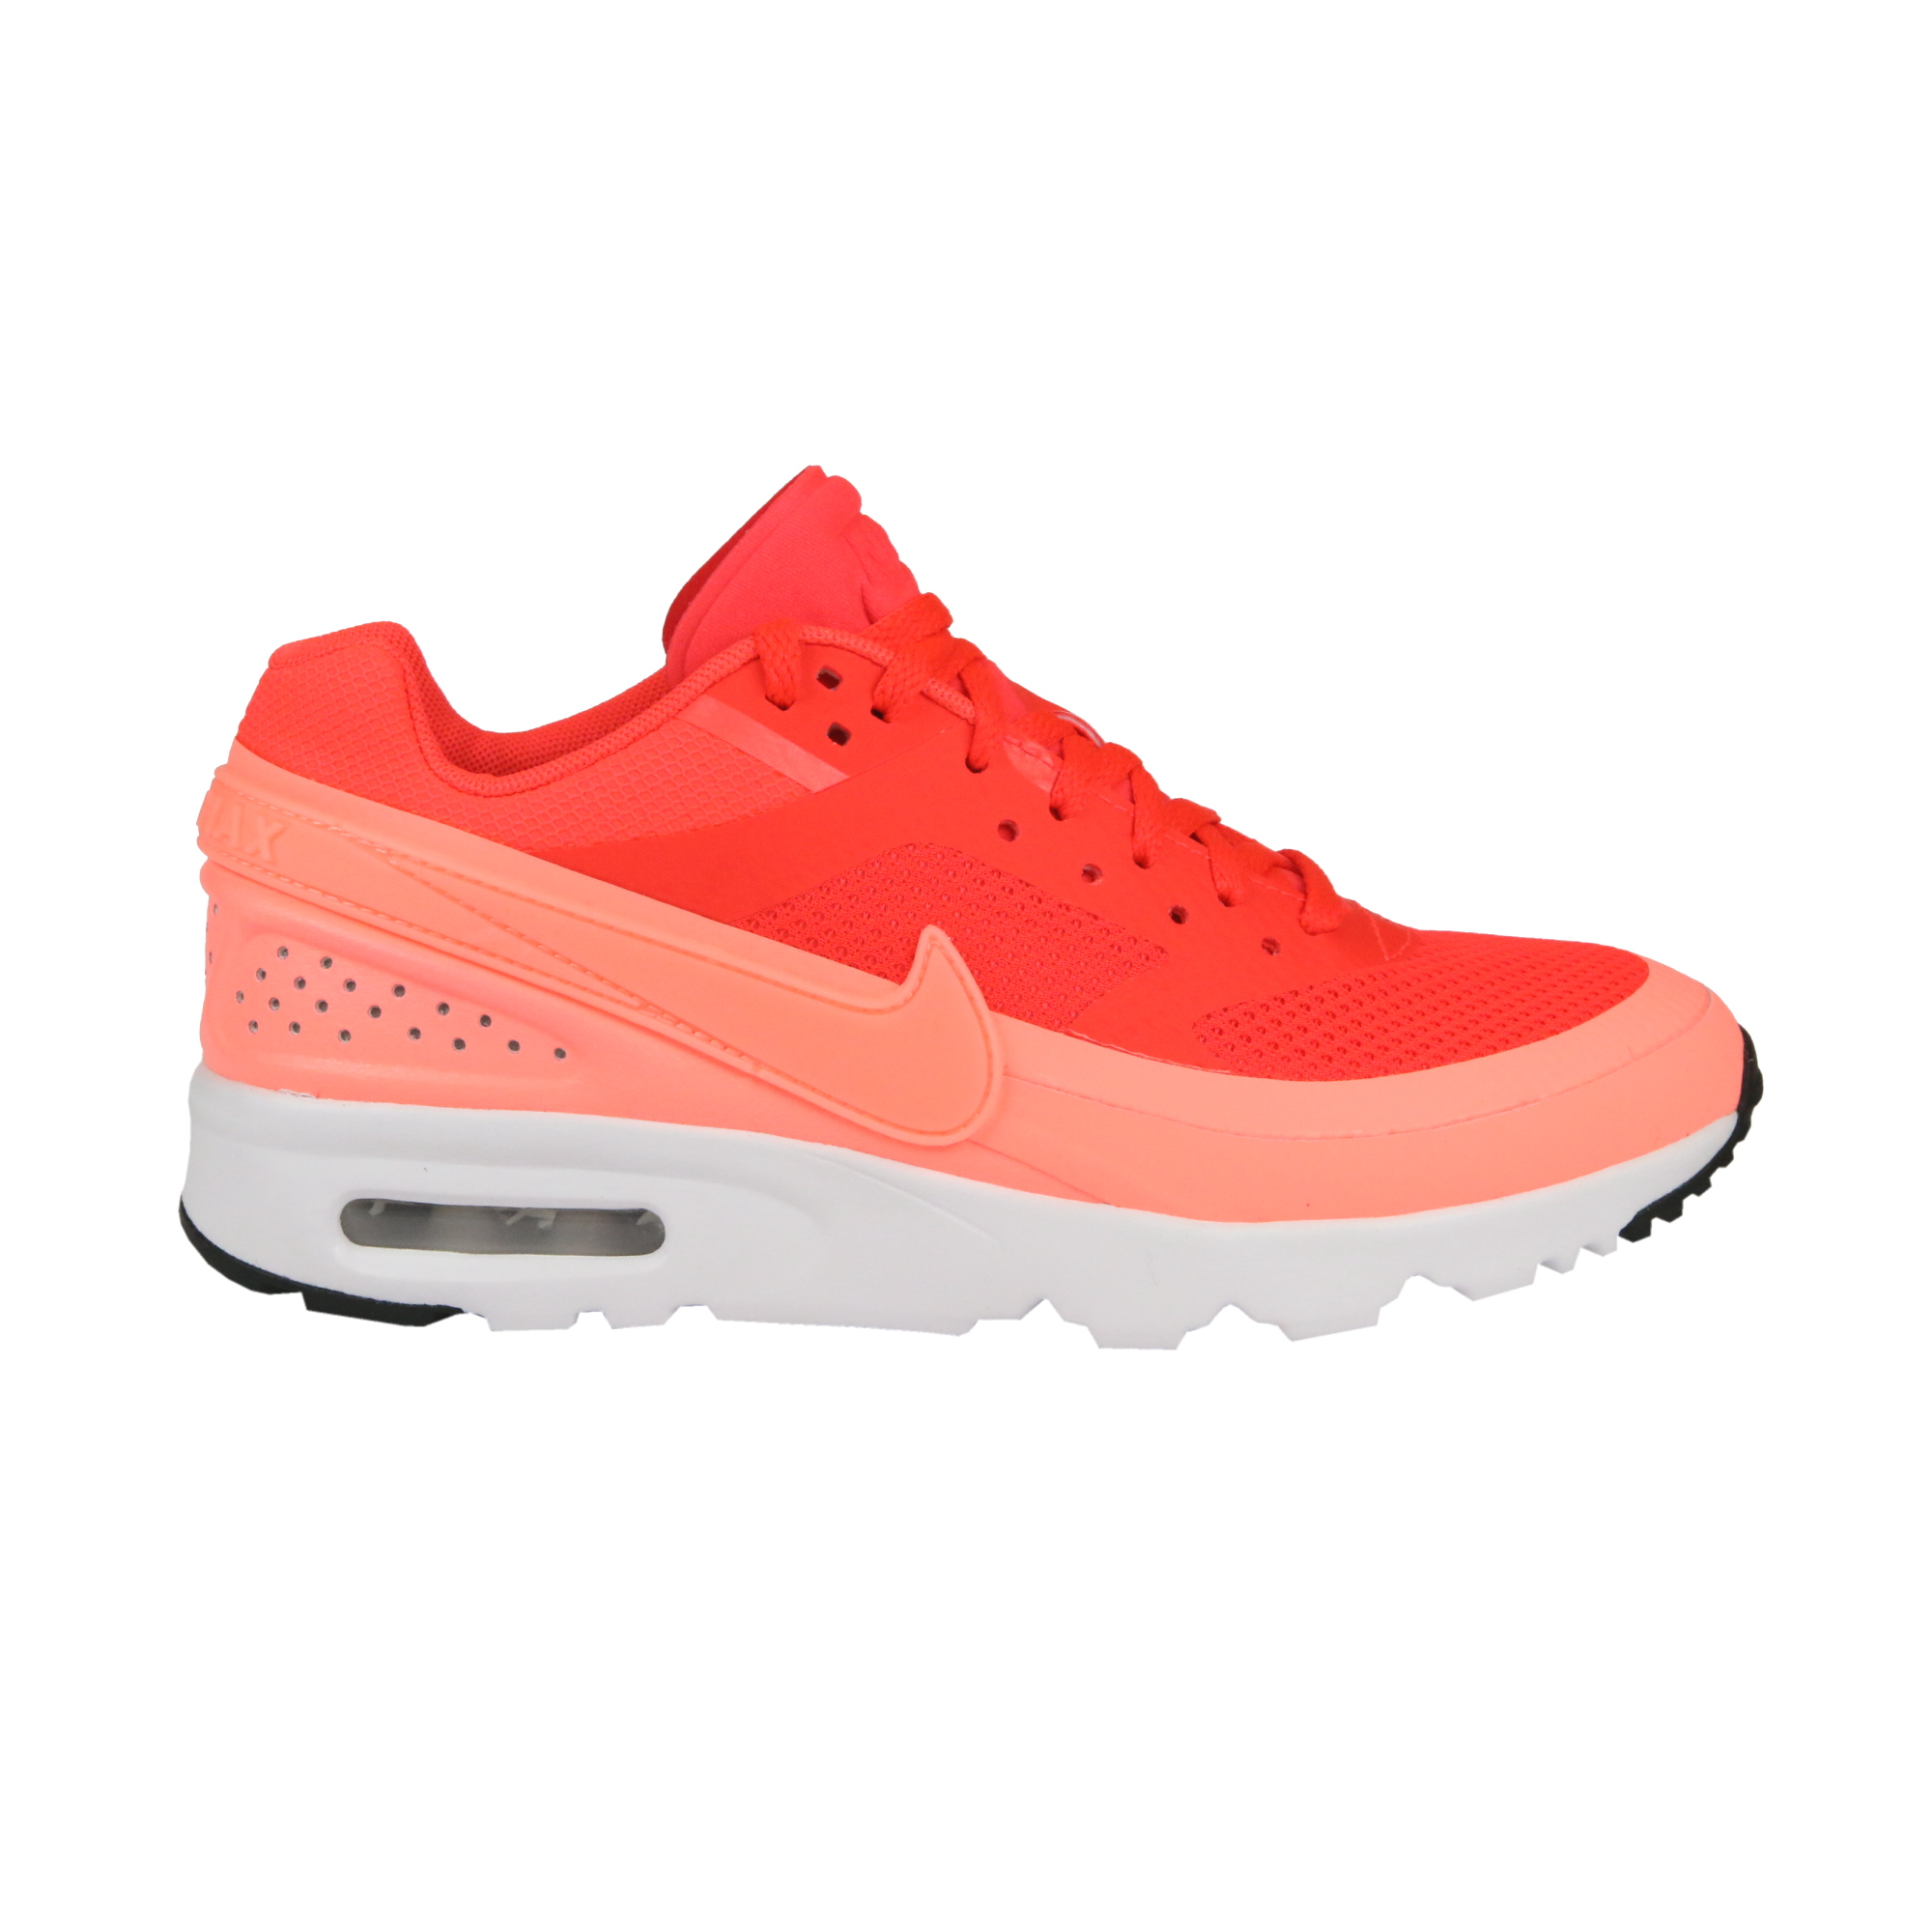 nike air max bw ultra bright crimson schuhe turnschuhe. Black Bedroom Furniture Sets. Home Design Ideas